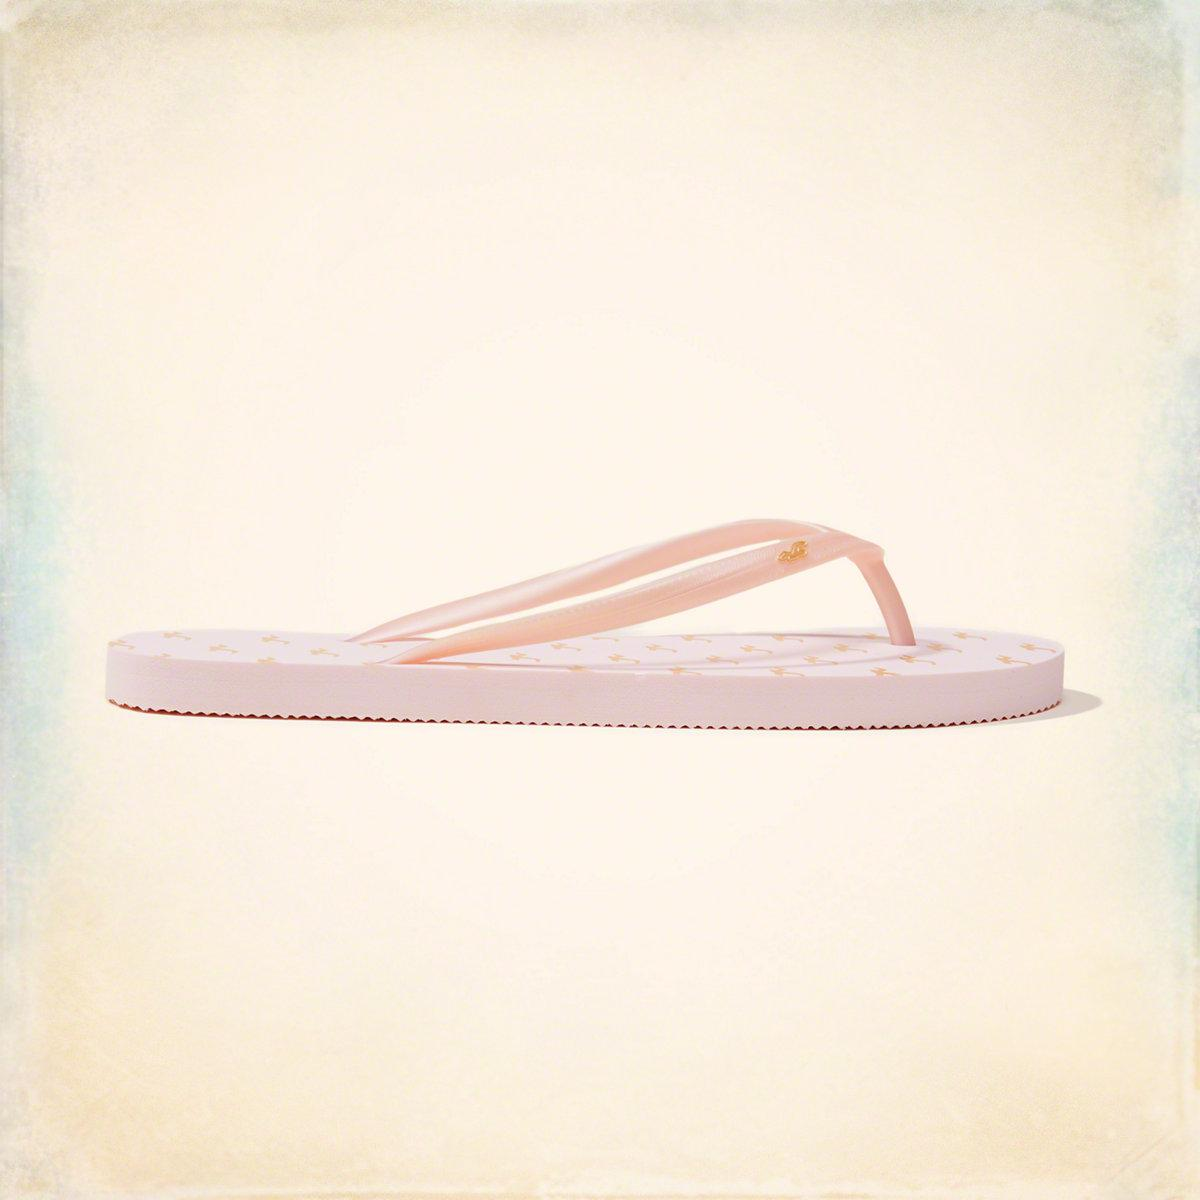 d1acaec41689 Lyst - Hollister Rubber Icon Flip Flop in Pink